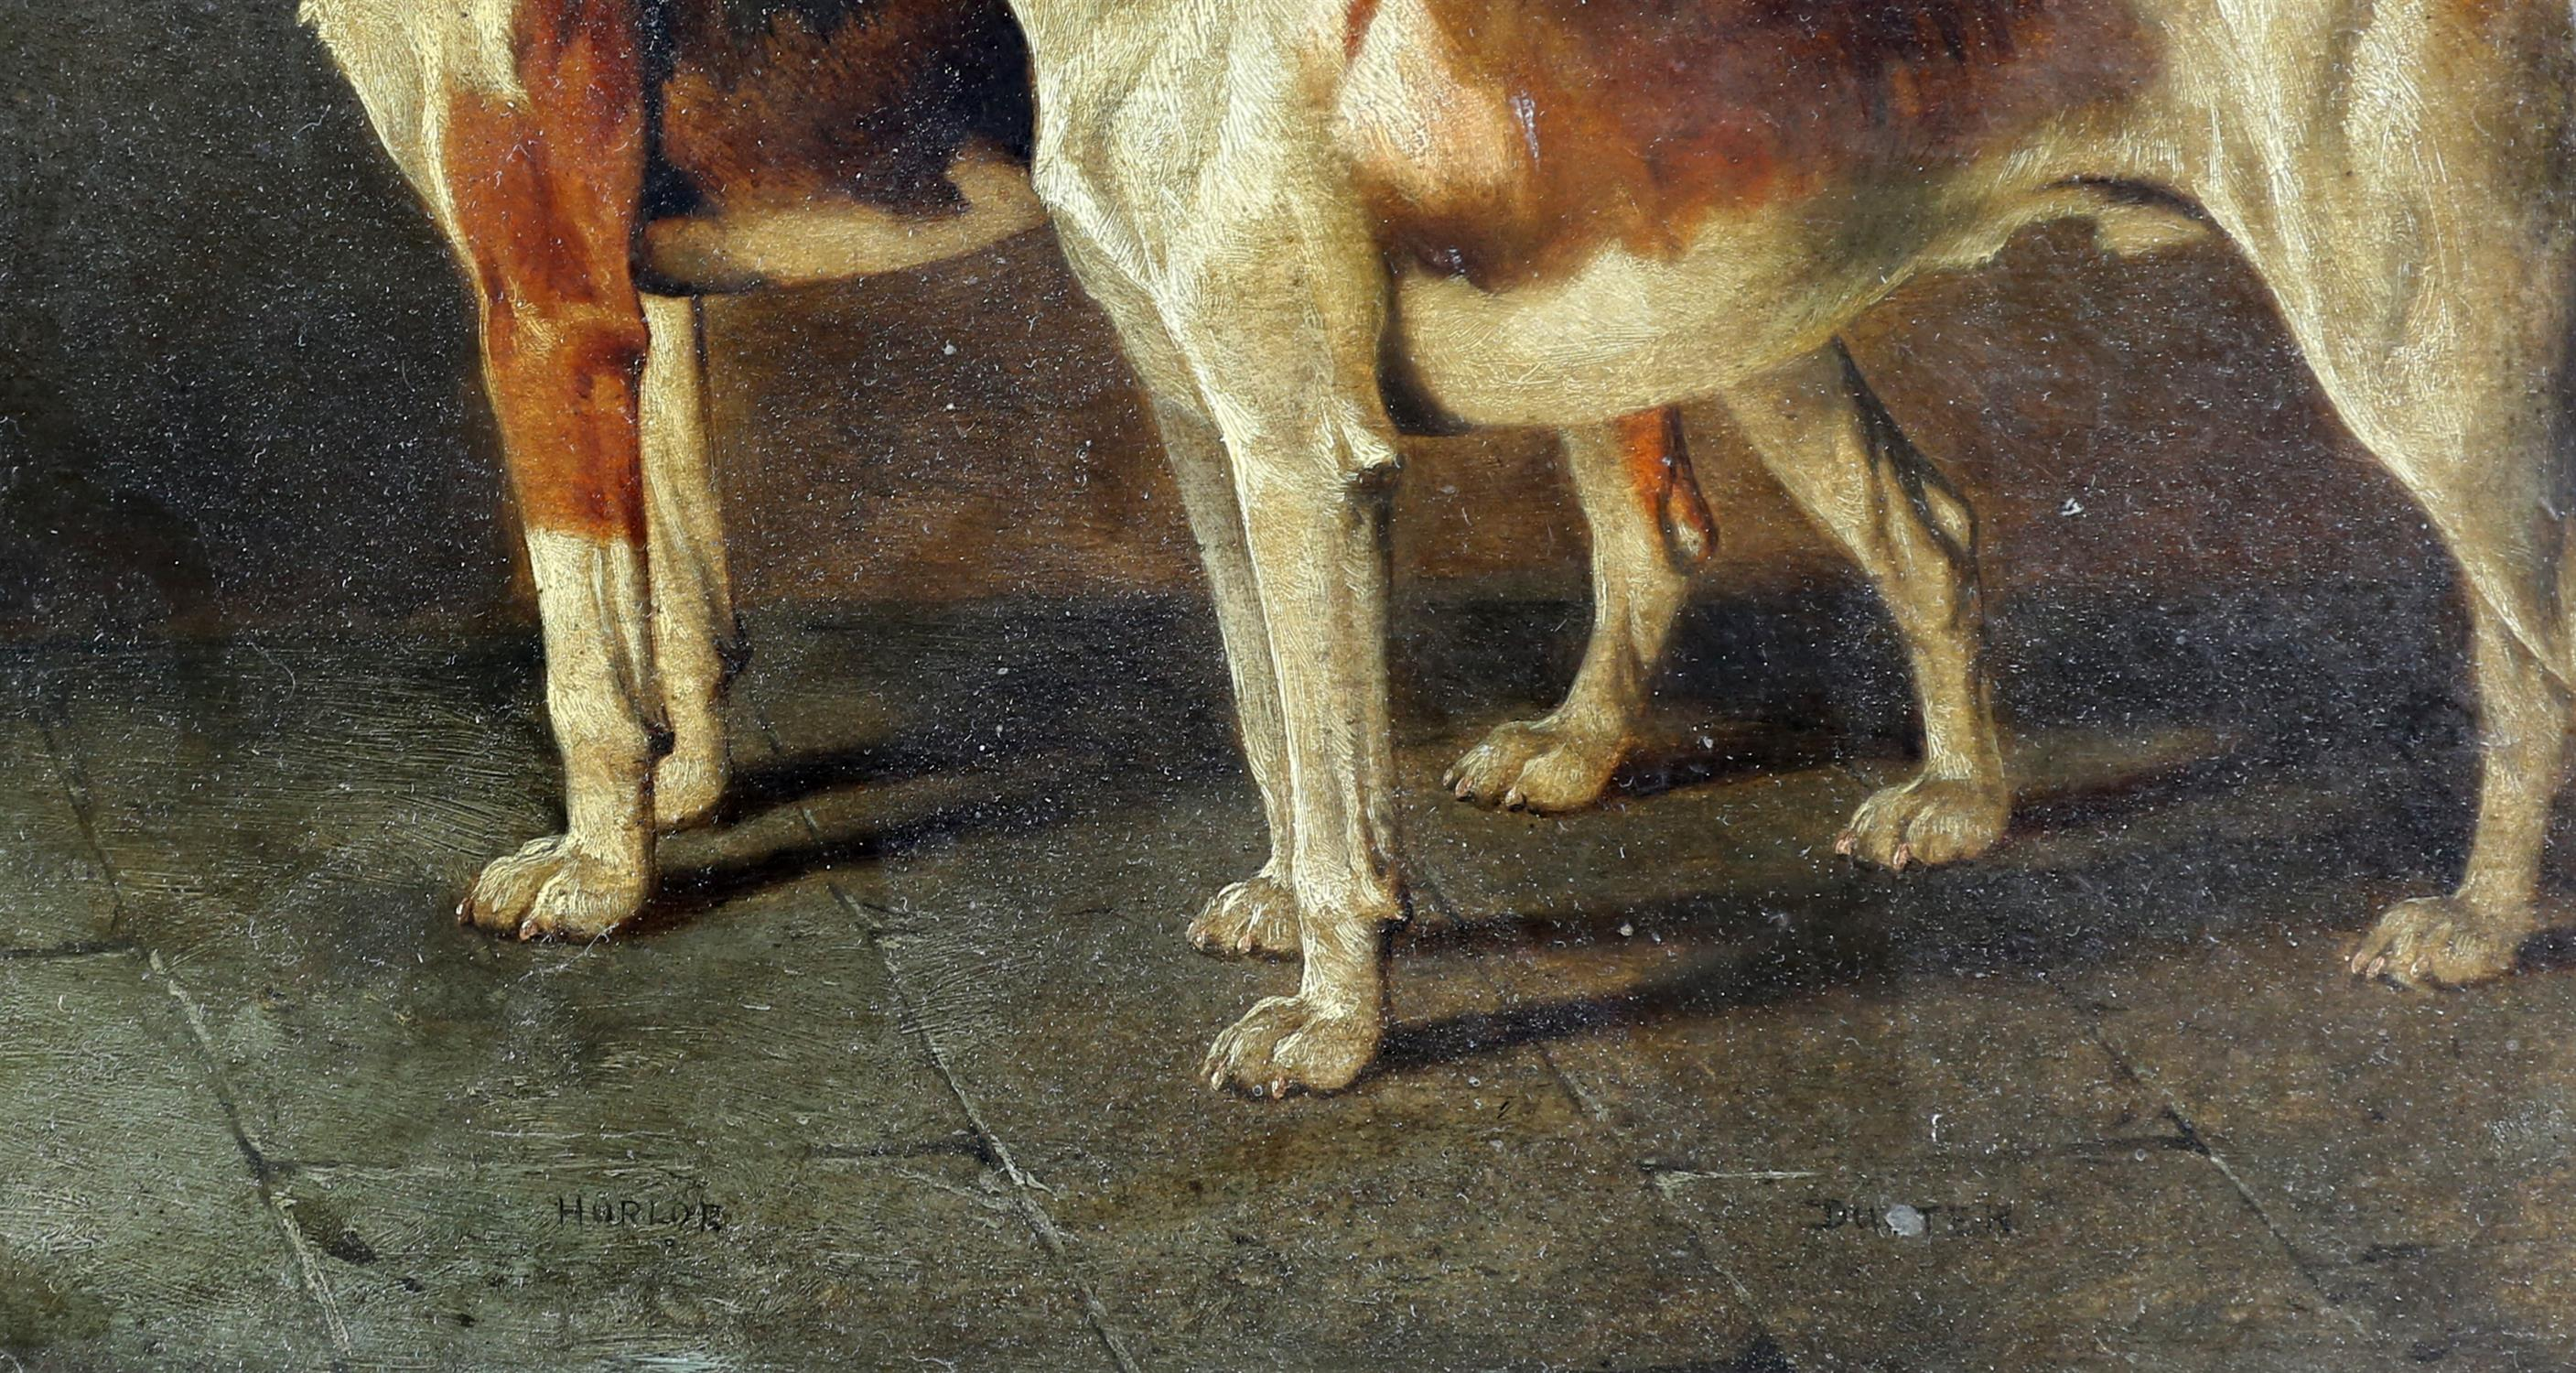 A Wheeler (19th century British), Two hounds, oil on board, signed and dated 1896 lower left, - Image 4 of 5